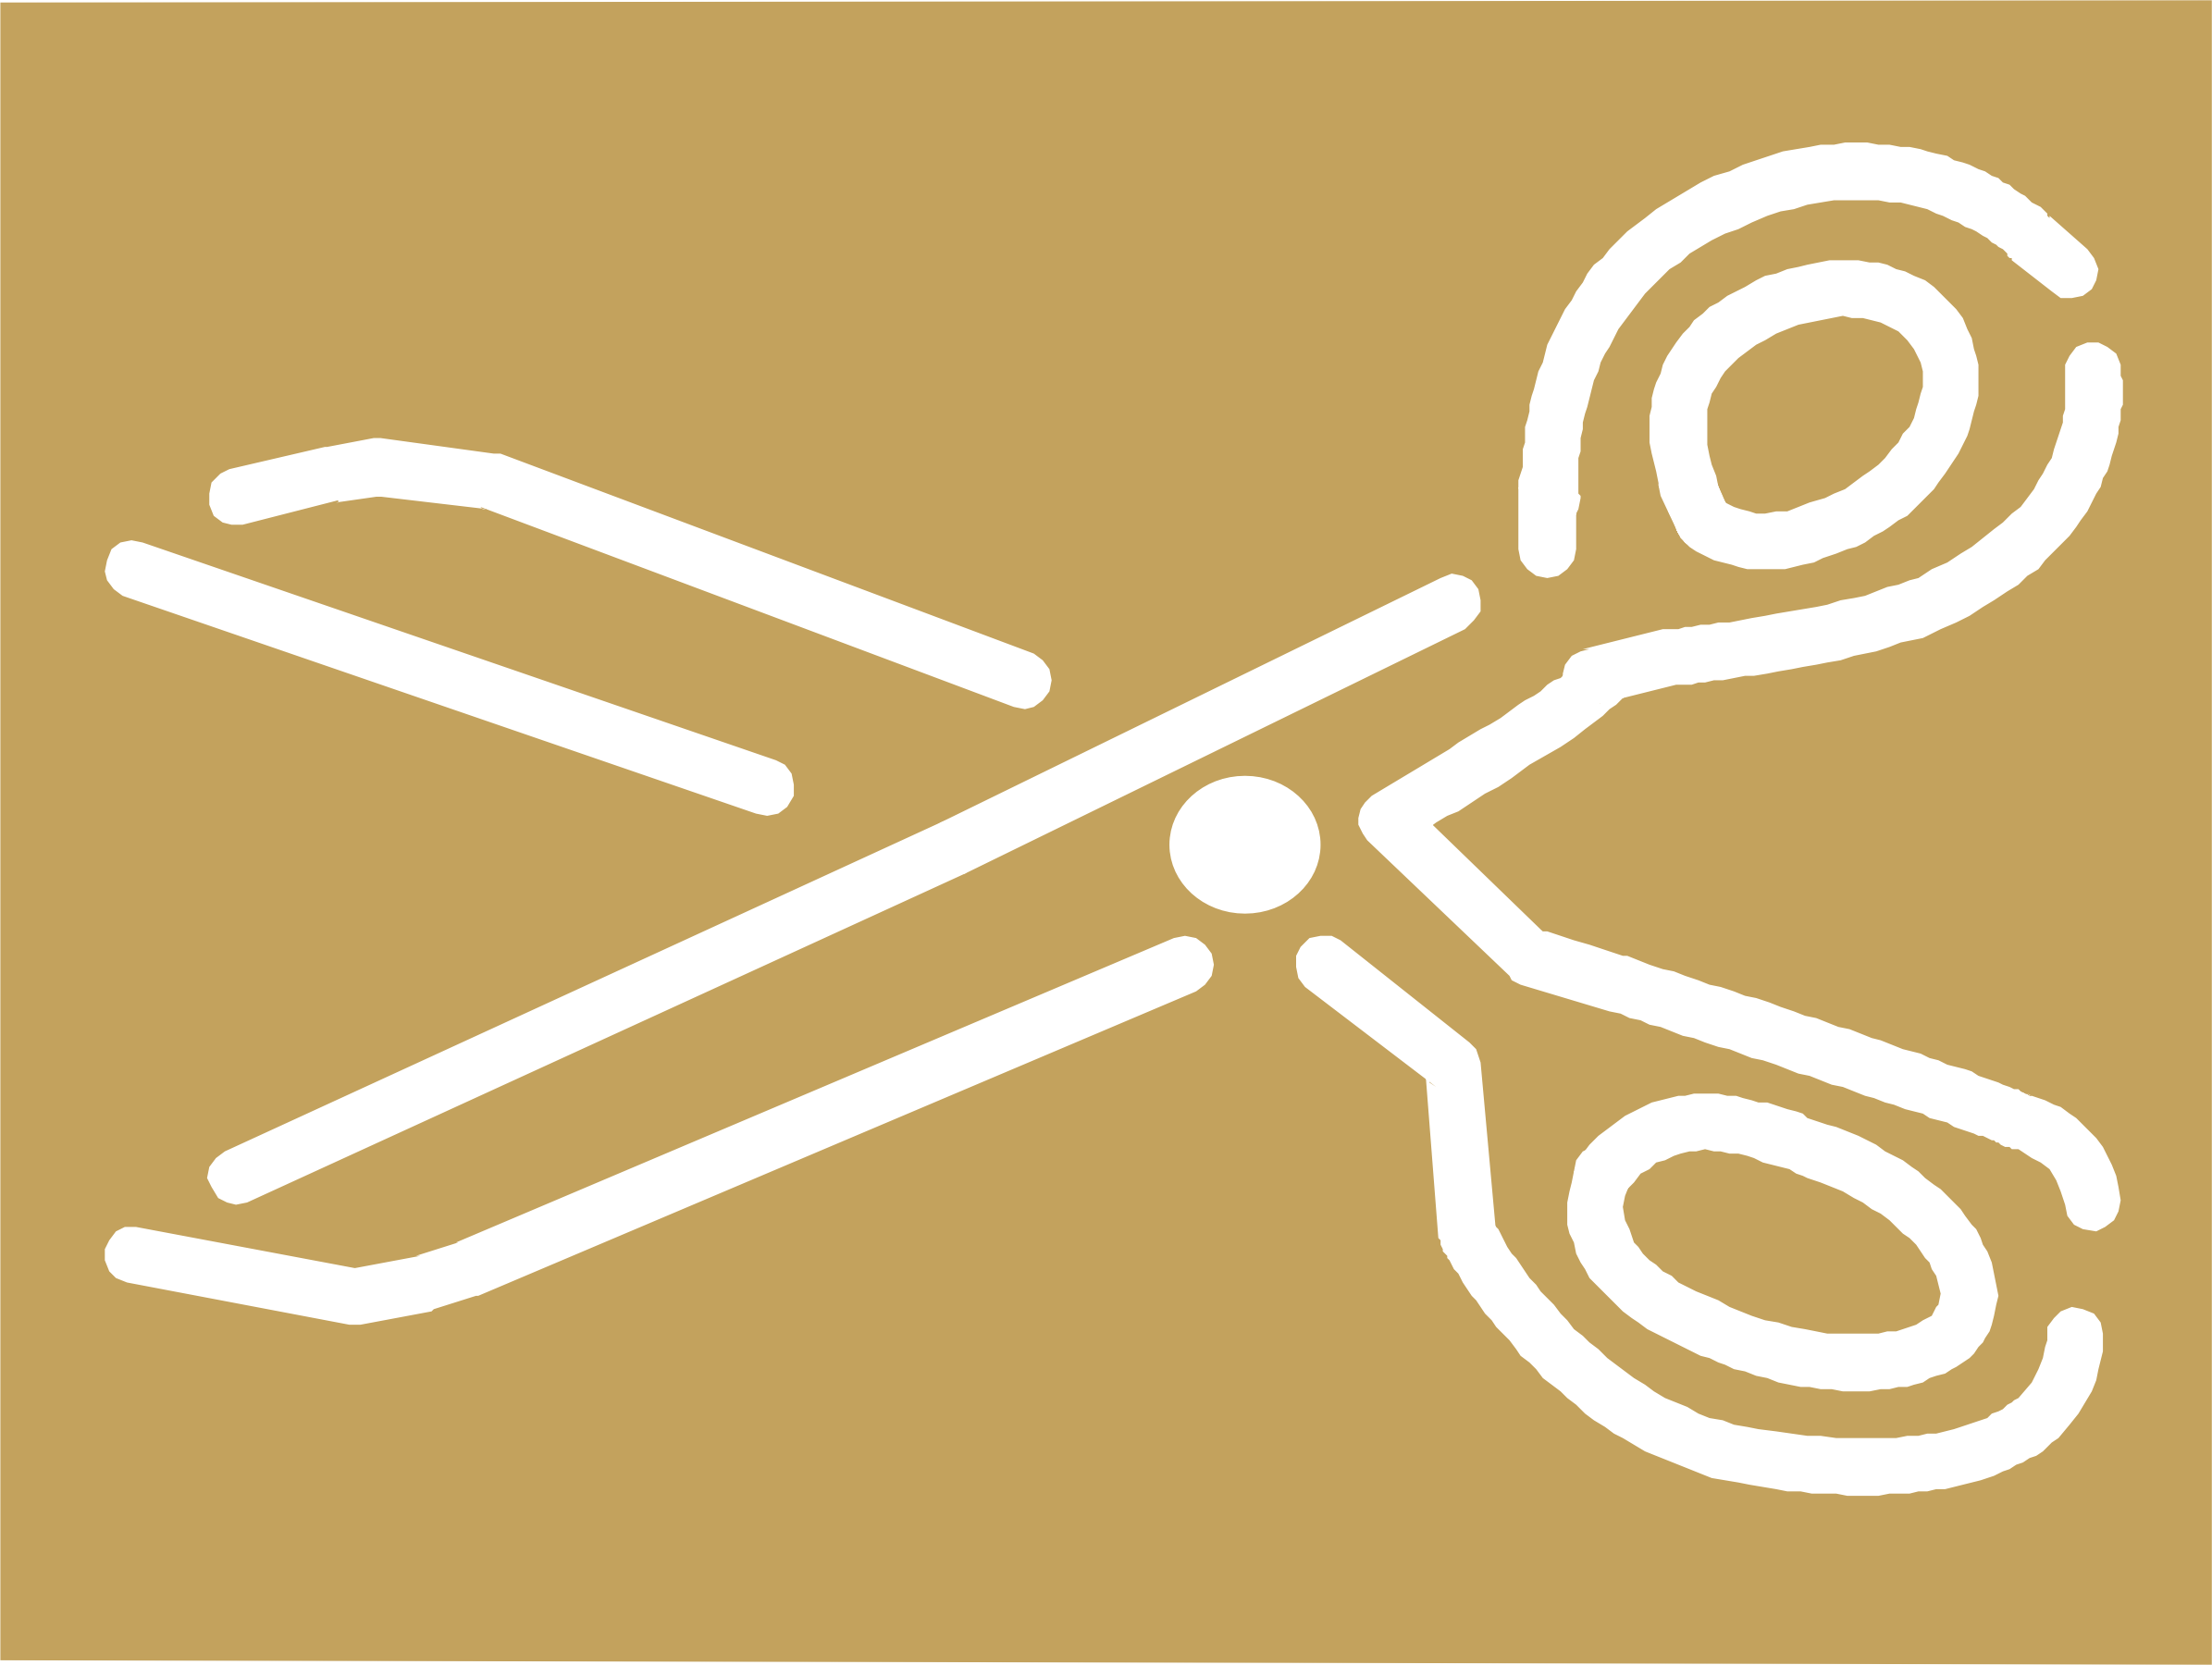 A pair of scissors by liftarn